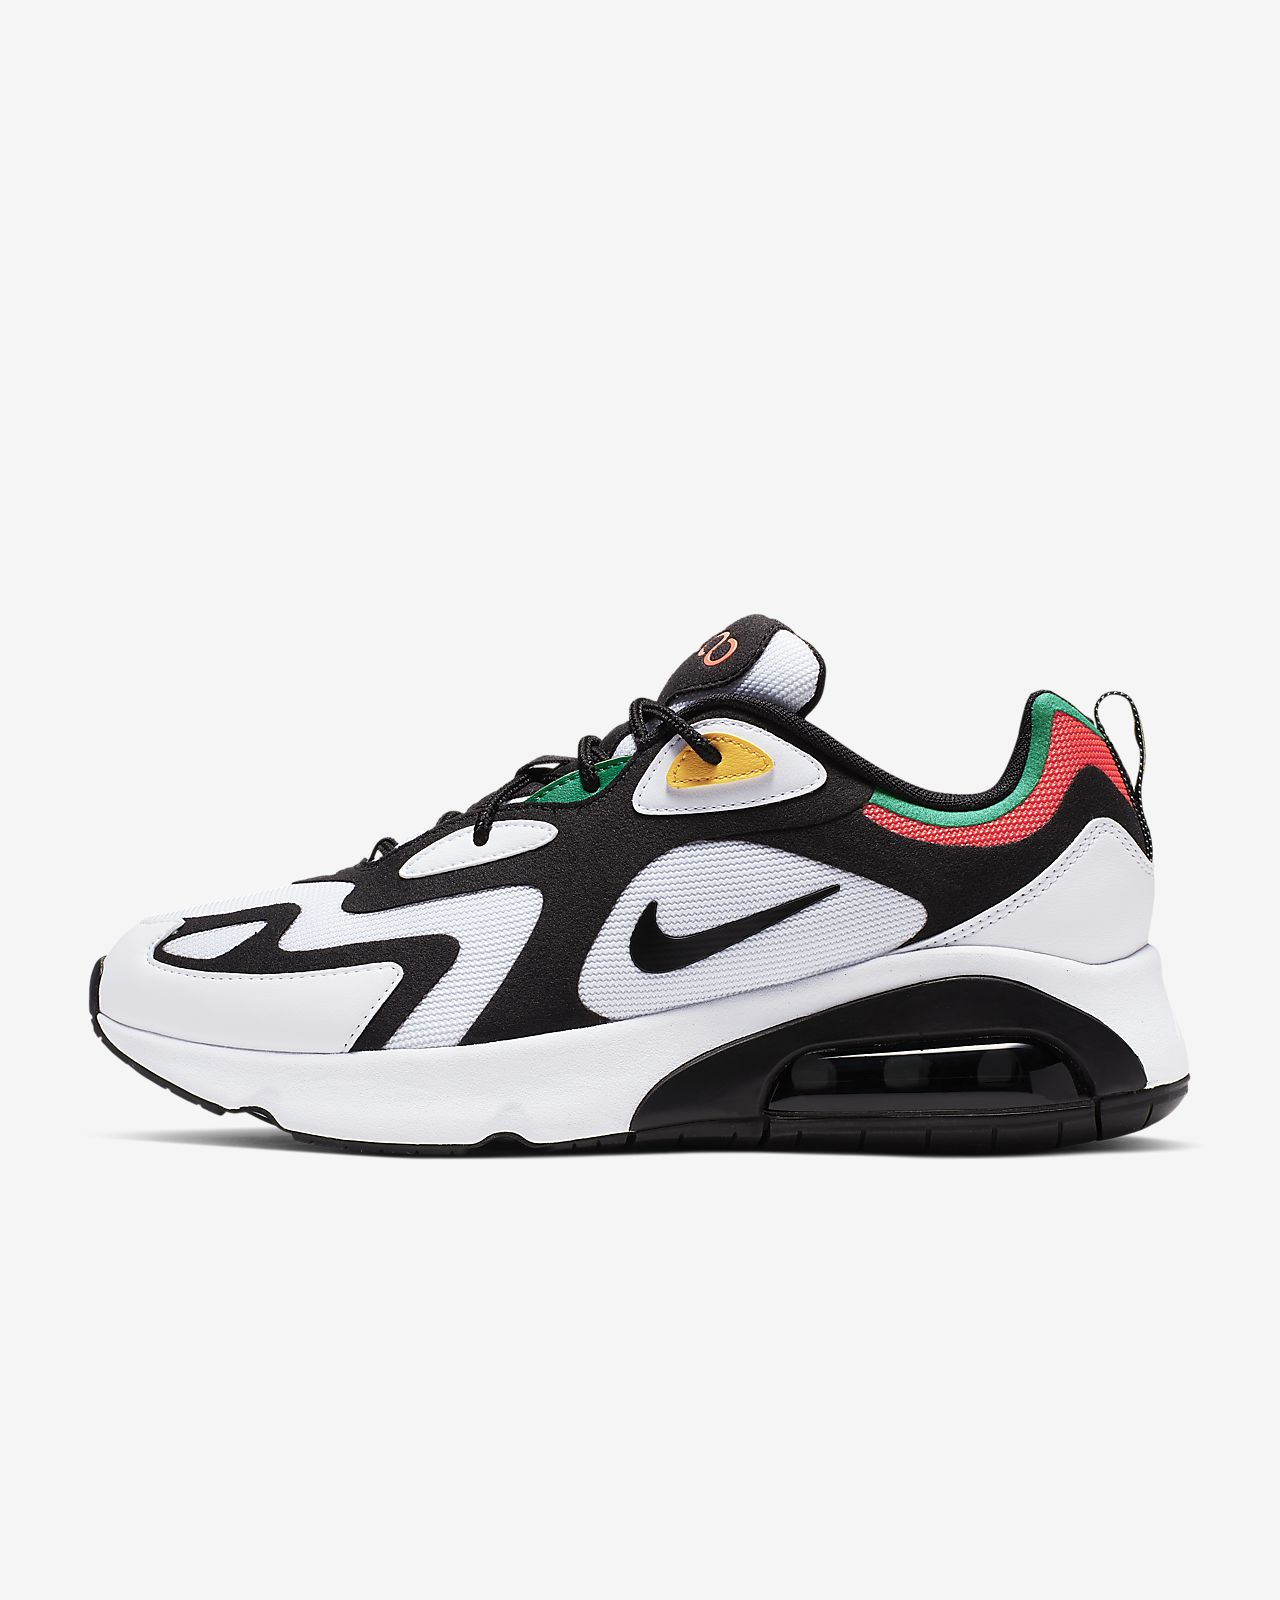 Chaussure Nike Air Max 200 (2000 World Stage) pour Homme